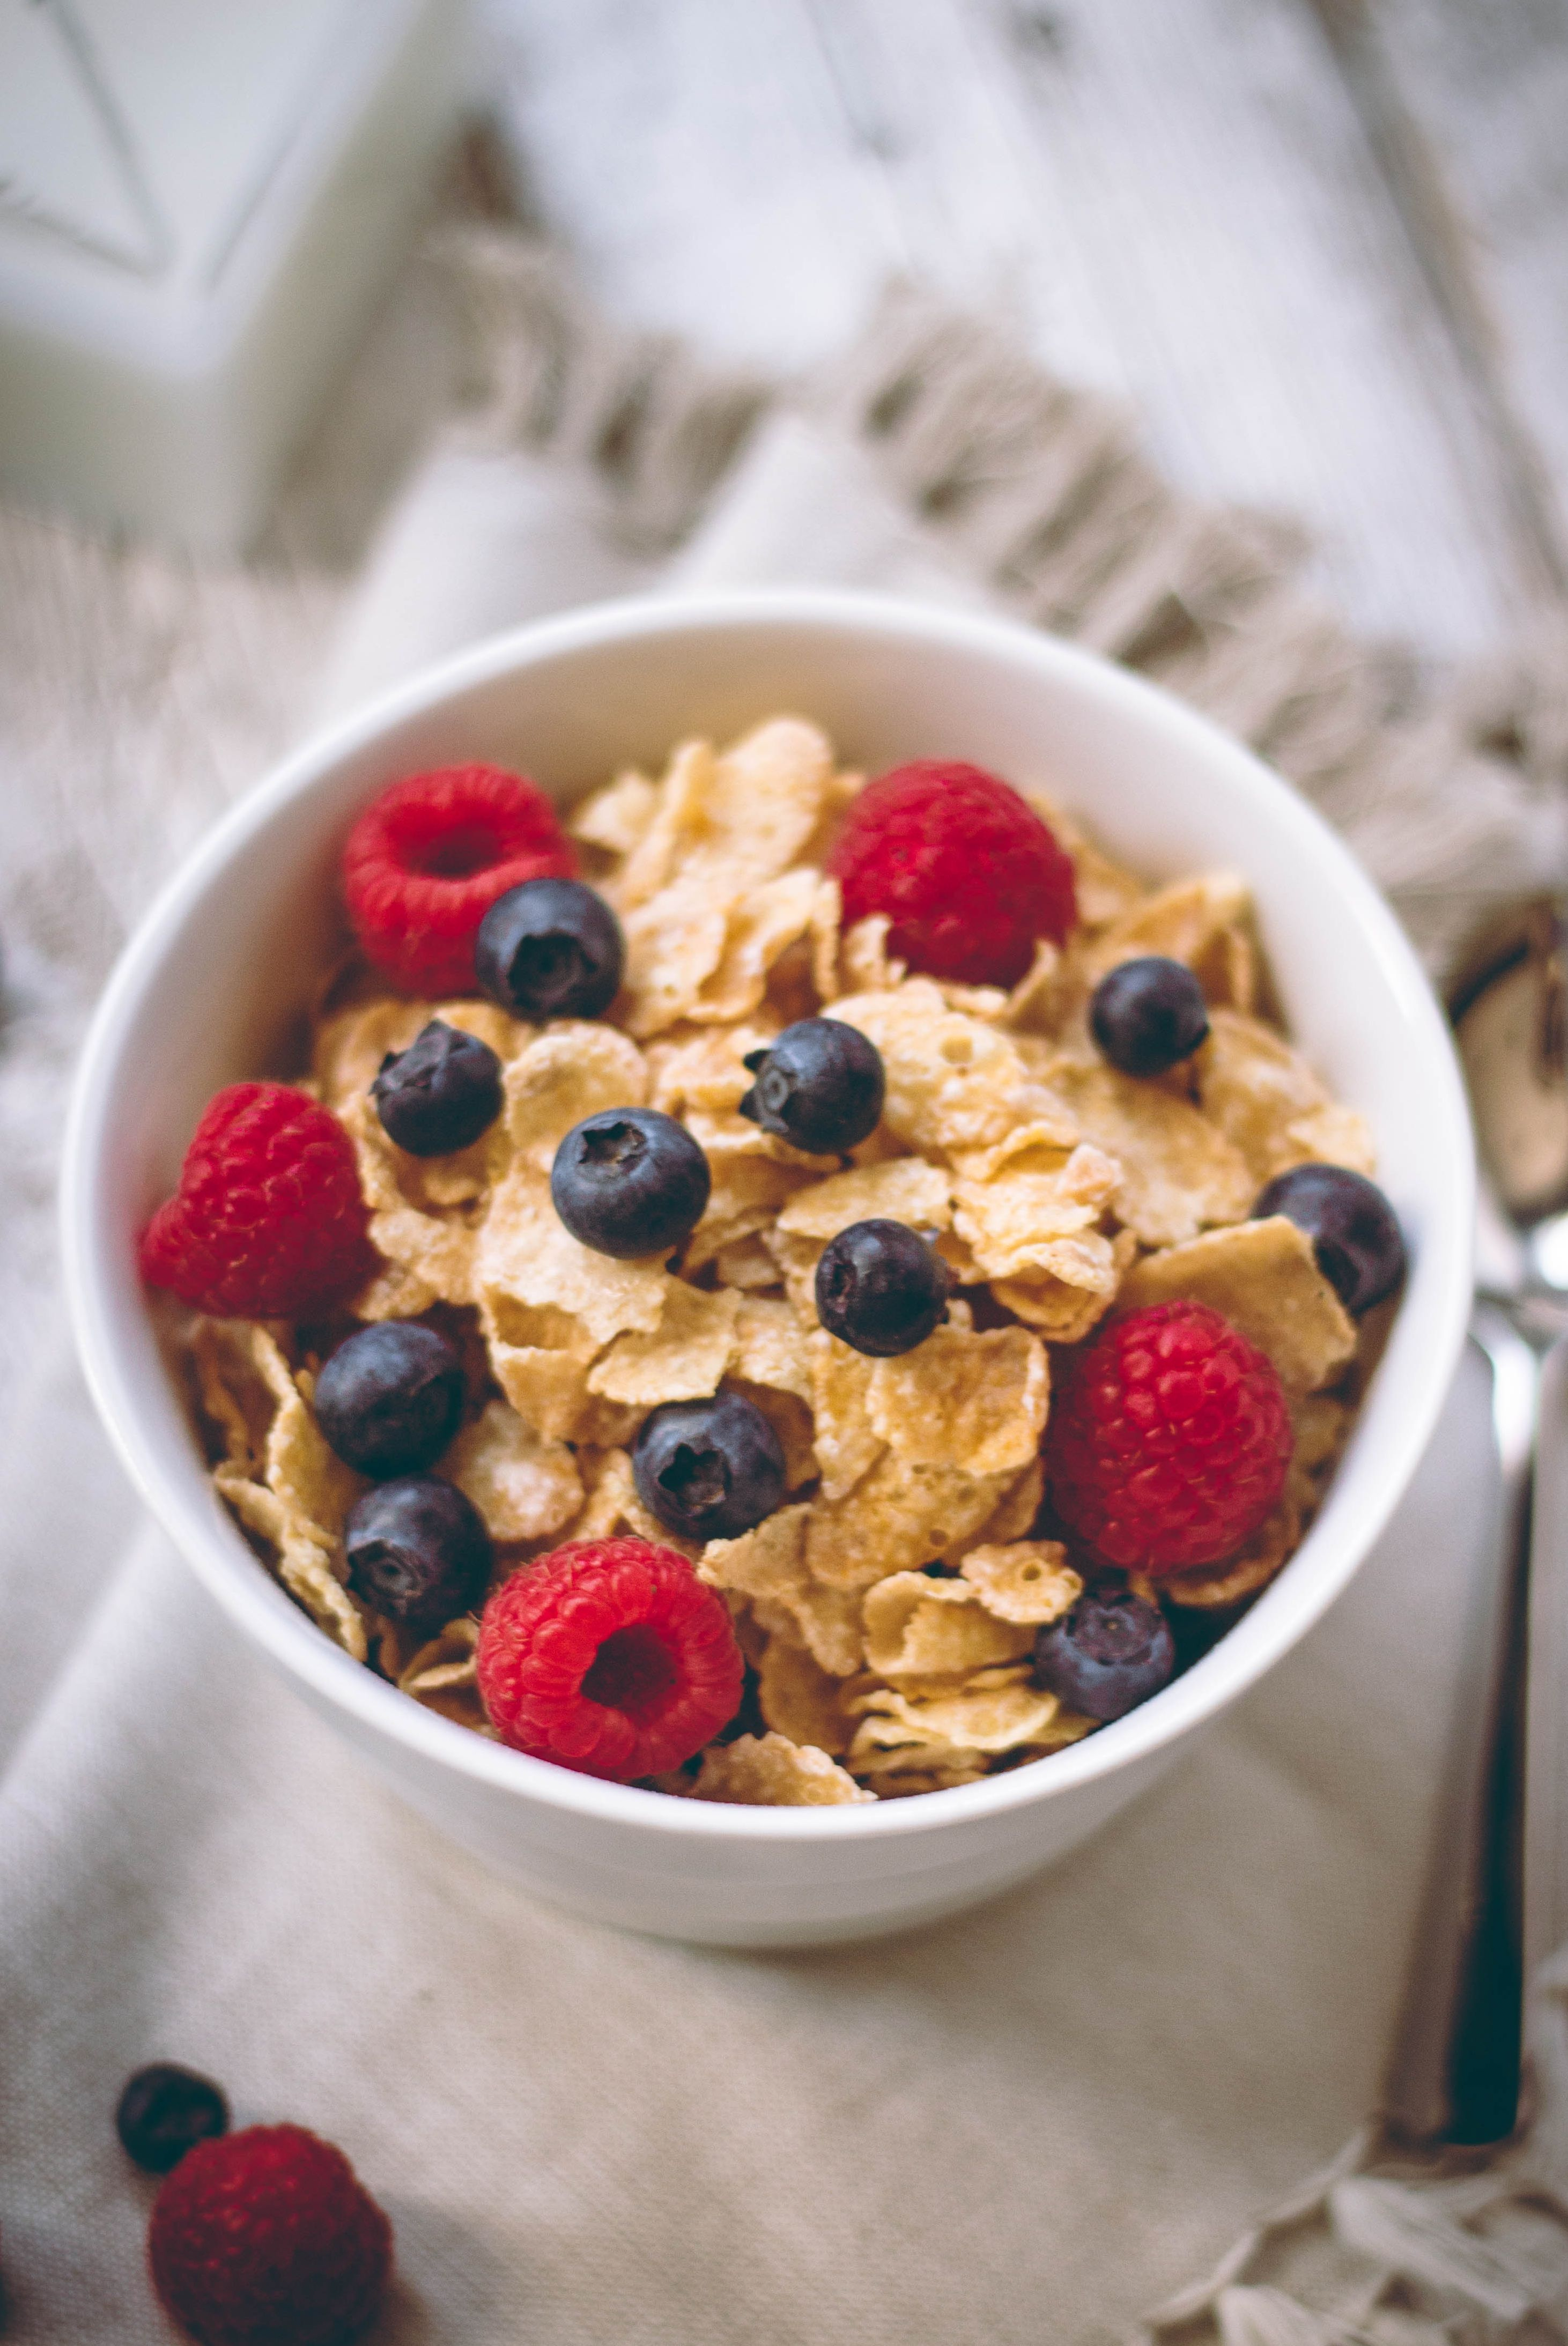 Cornflakes with blueberries and raspberries